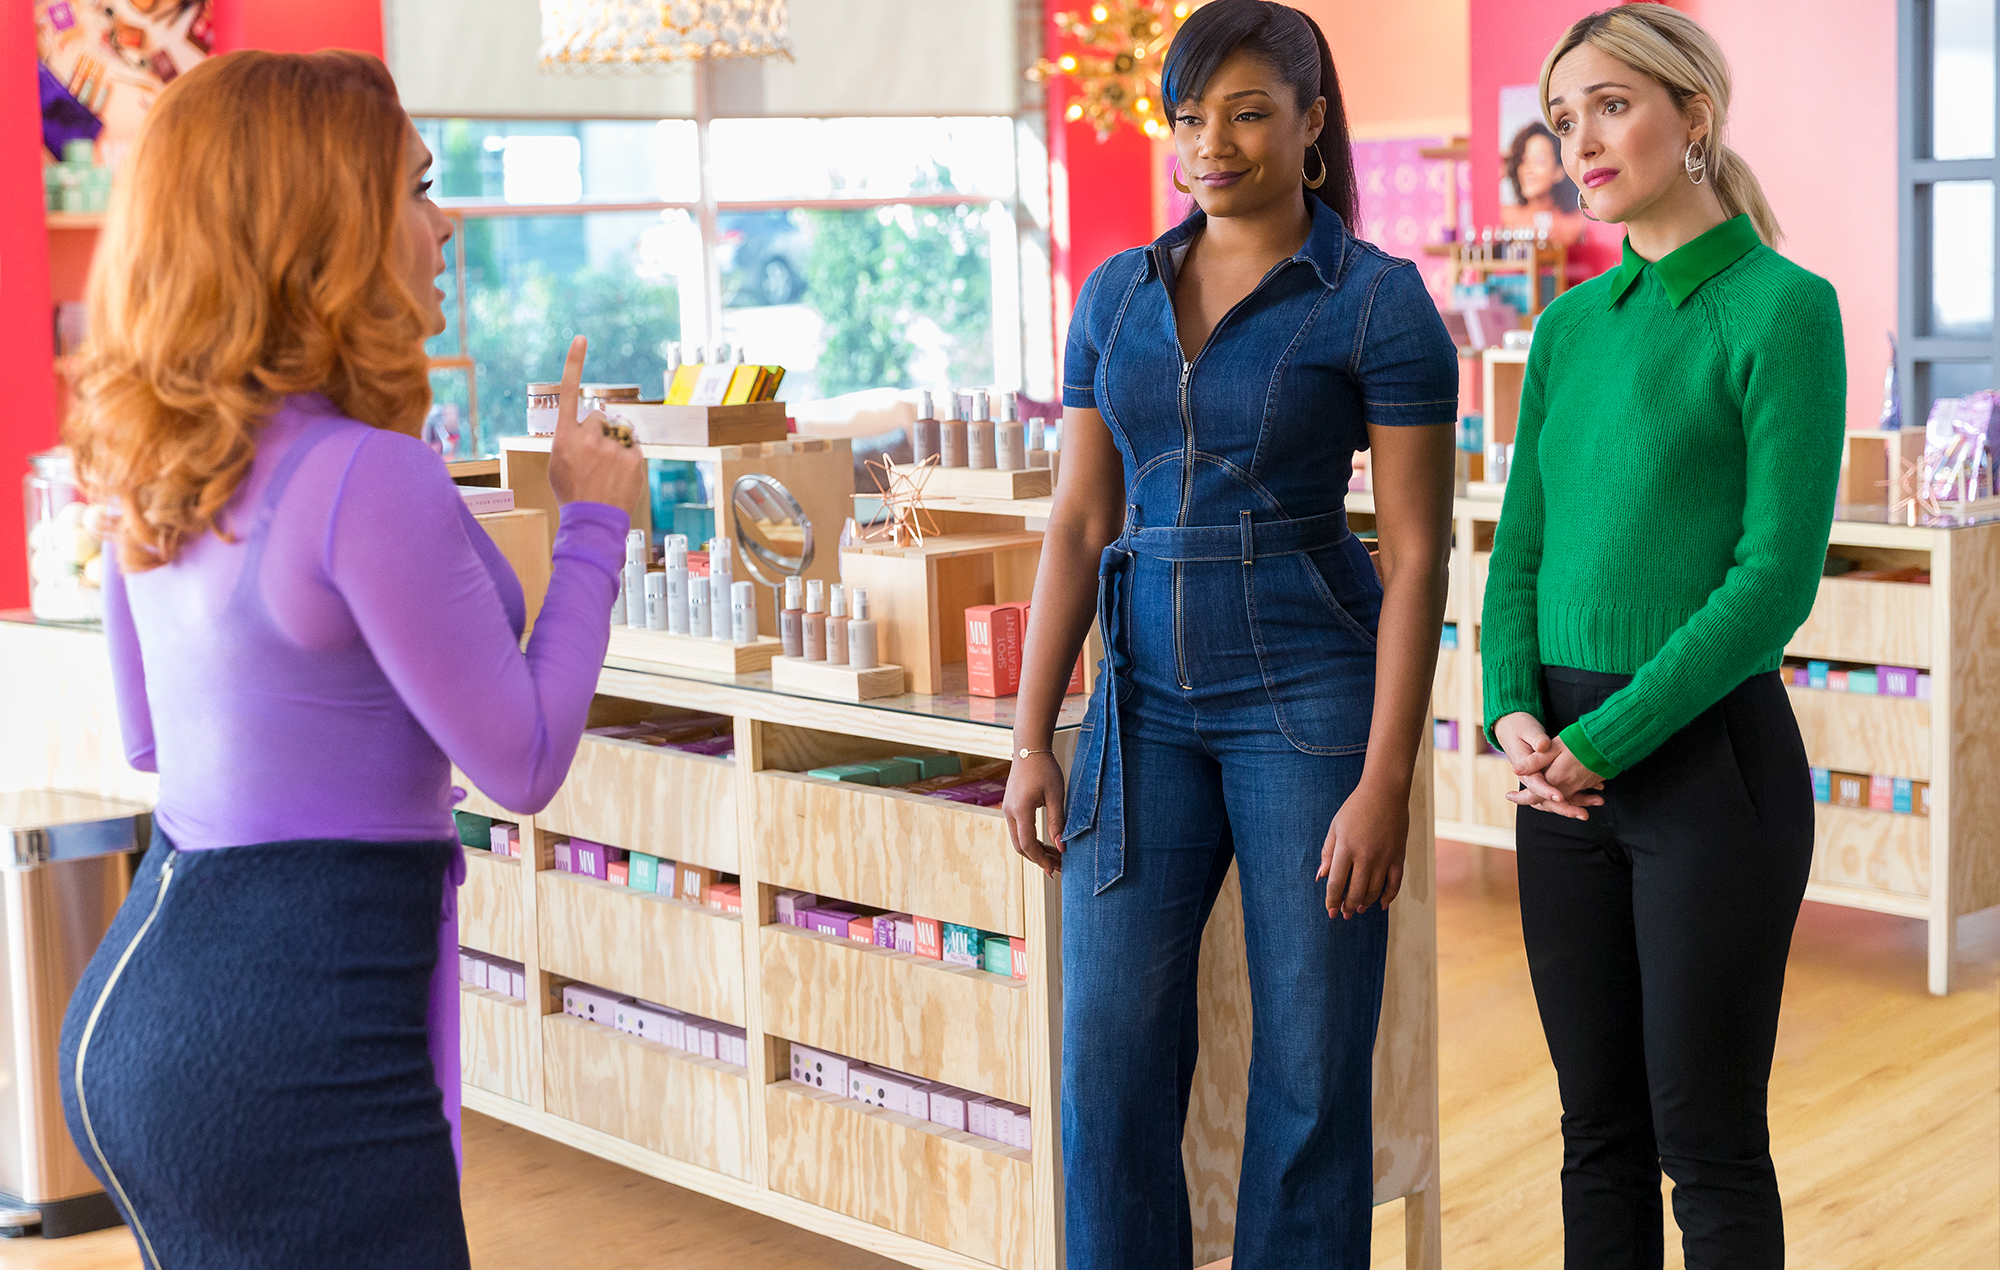 'Like A Boss' review: female buddy comedy wastes its top-level talent